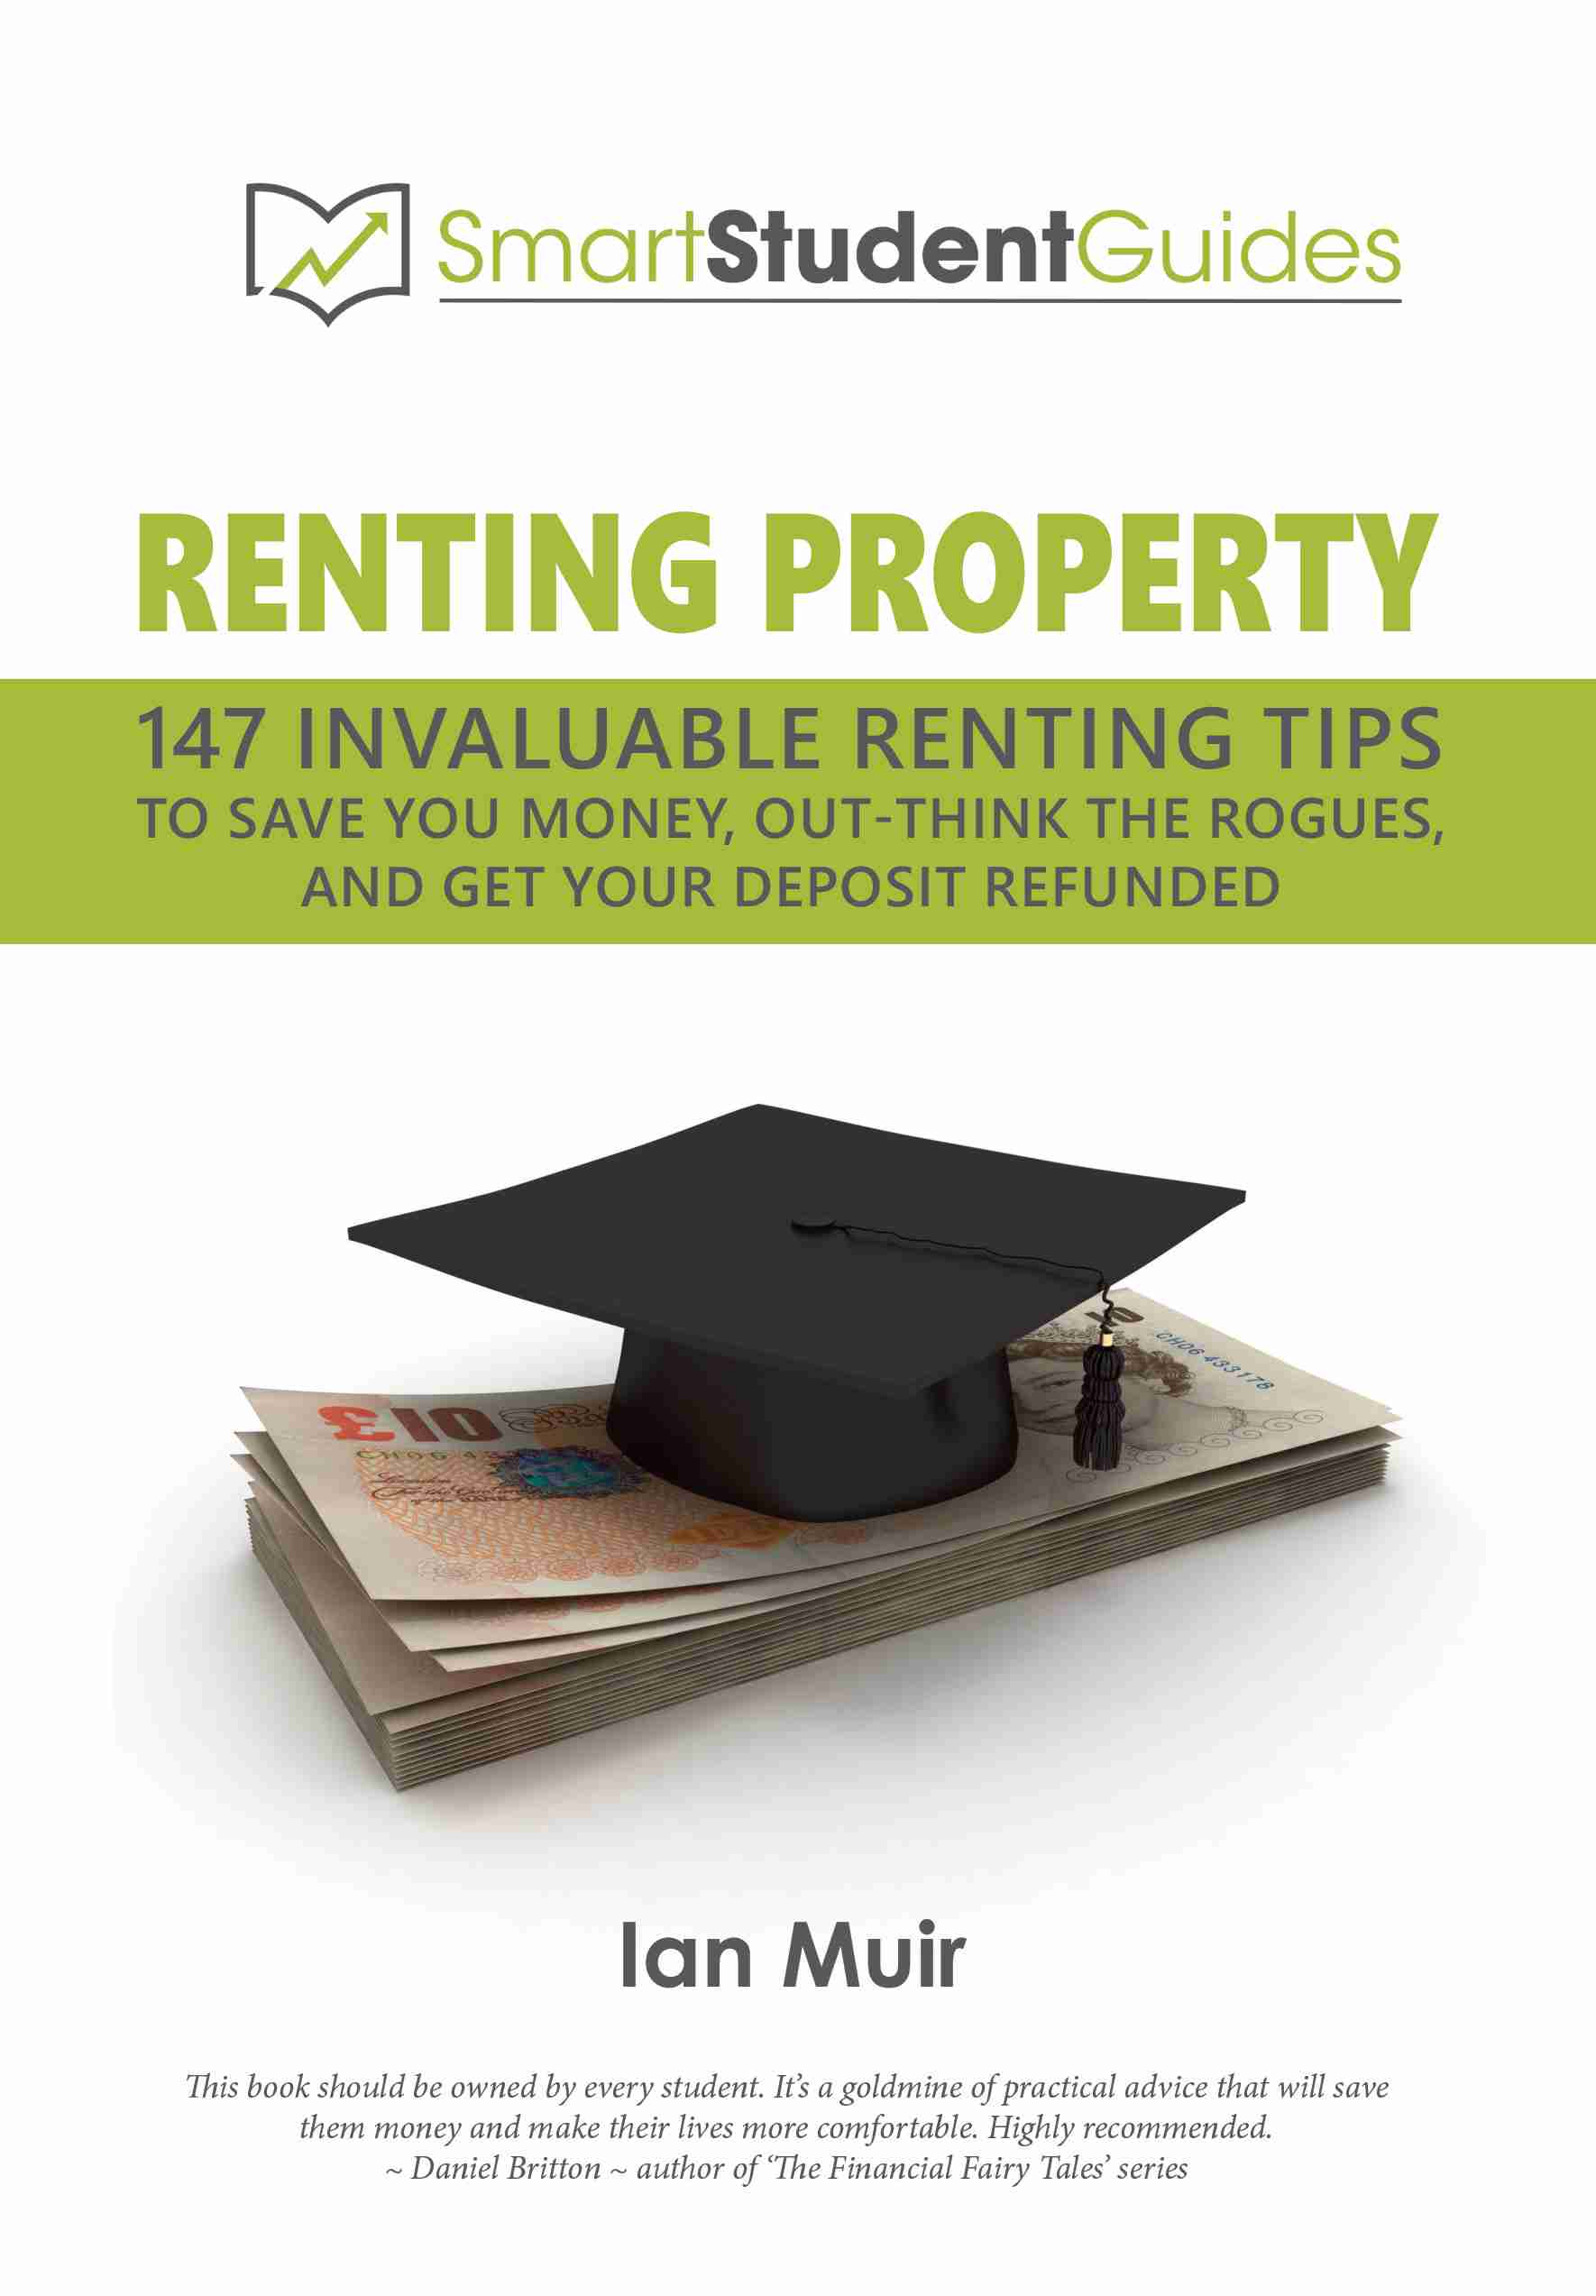 Renting Property by Ian Muir